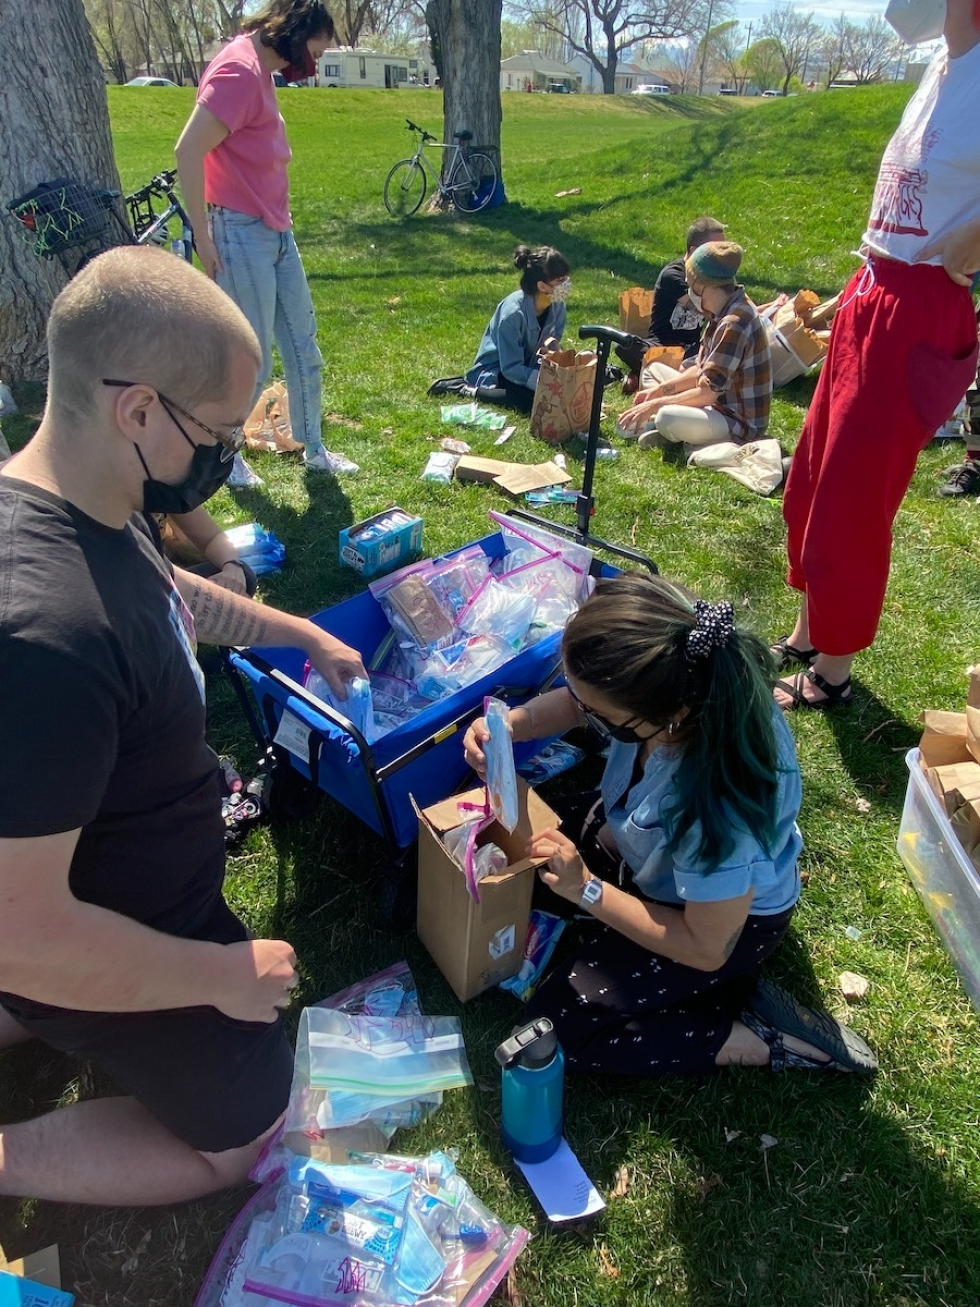 Volunteers meet at Jefferson Park in the Ballpark Neighborhood to assemble hygiene kits before passing out the kits to encampments throughout the city.   Photo by Roberto Elguera